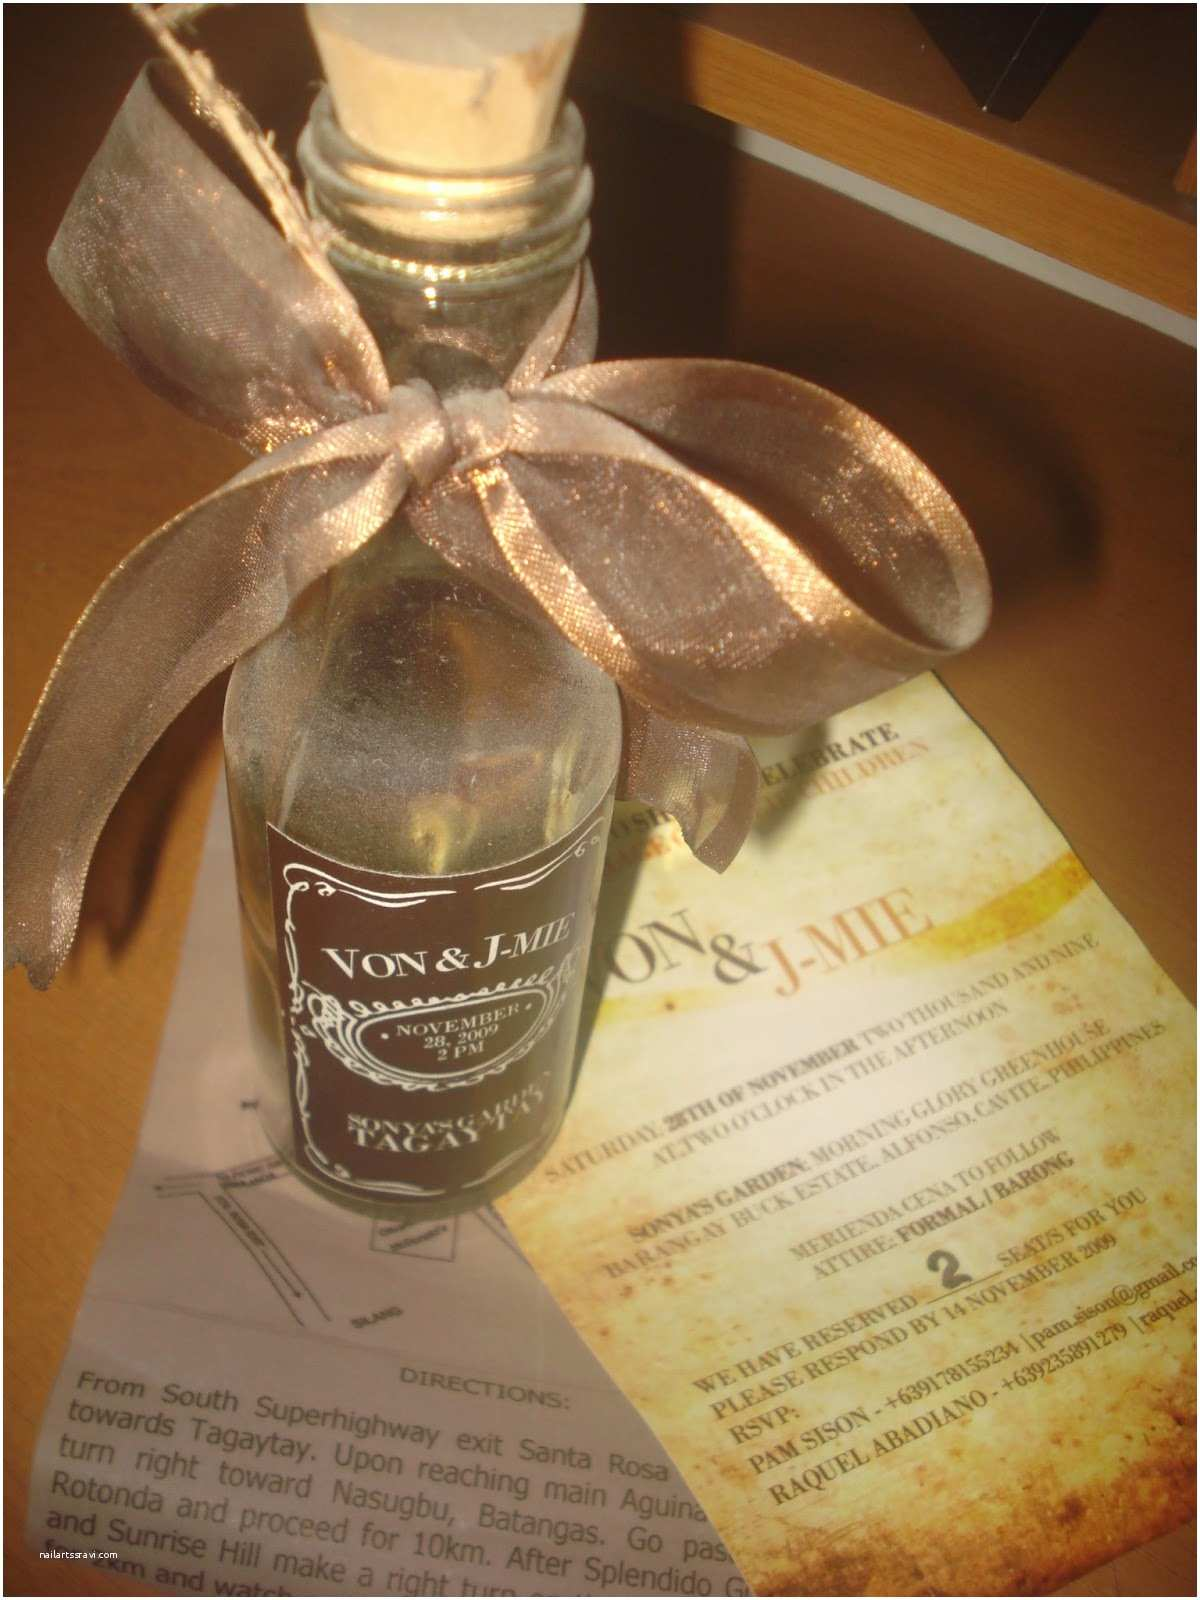 Wedding Invitations In A Bottle Tipid Party Wedding Invitation In A Bottle